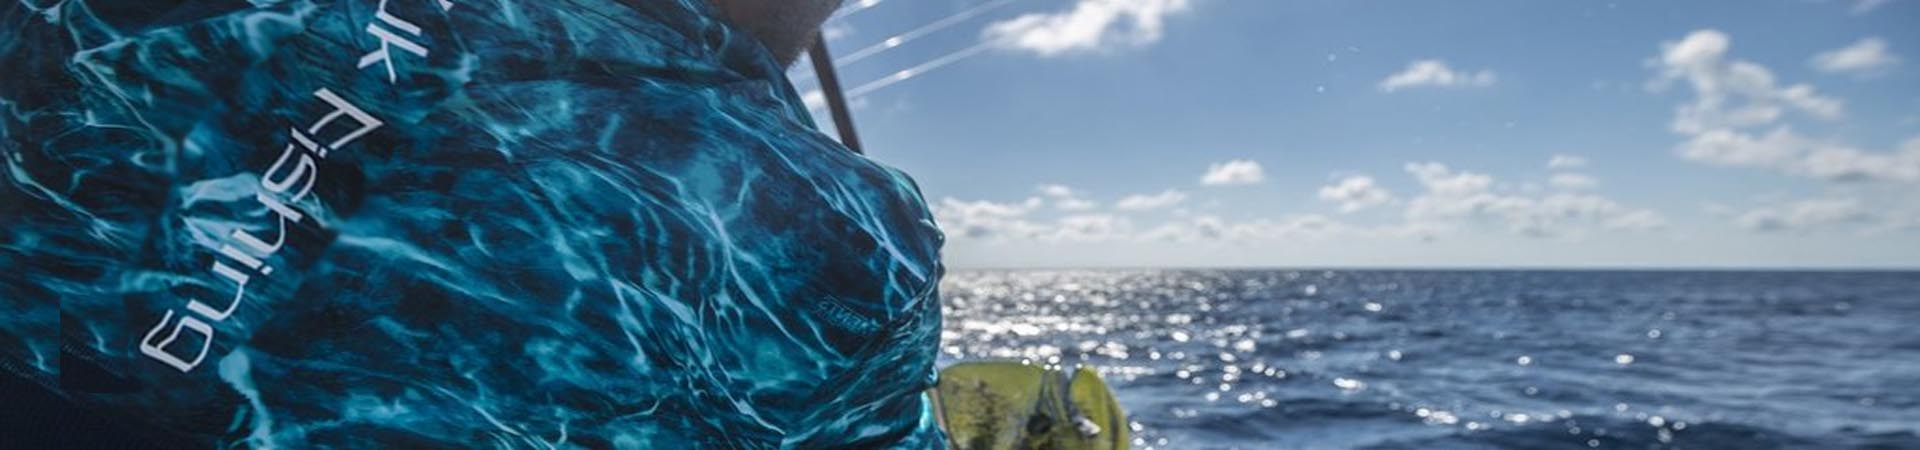 Huk Fishing  Mossy Oak Elements Clothing Now Available